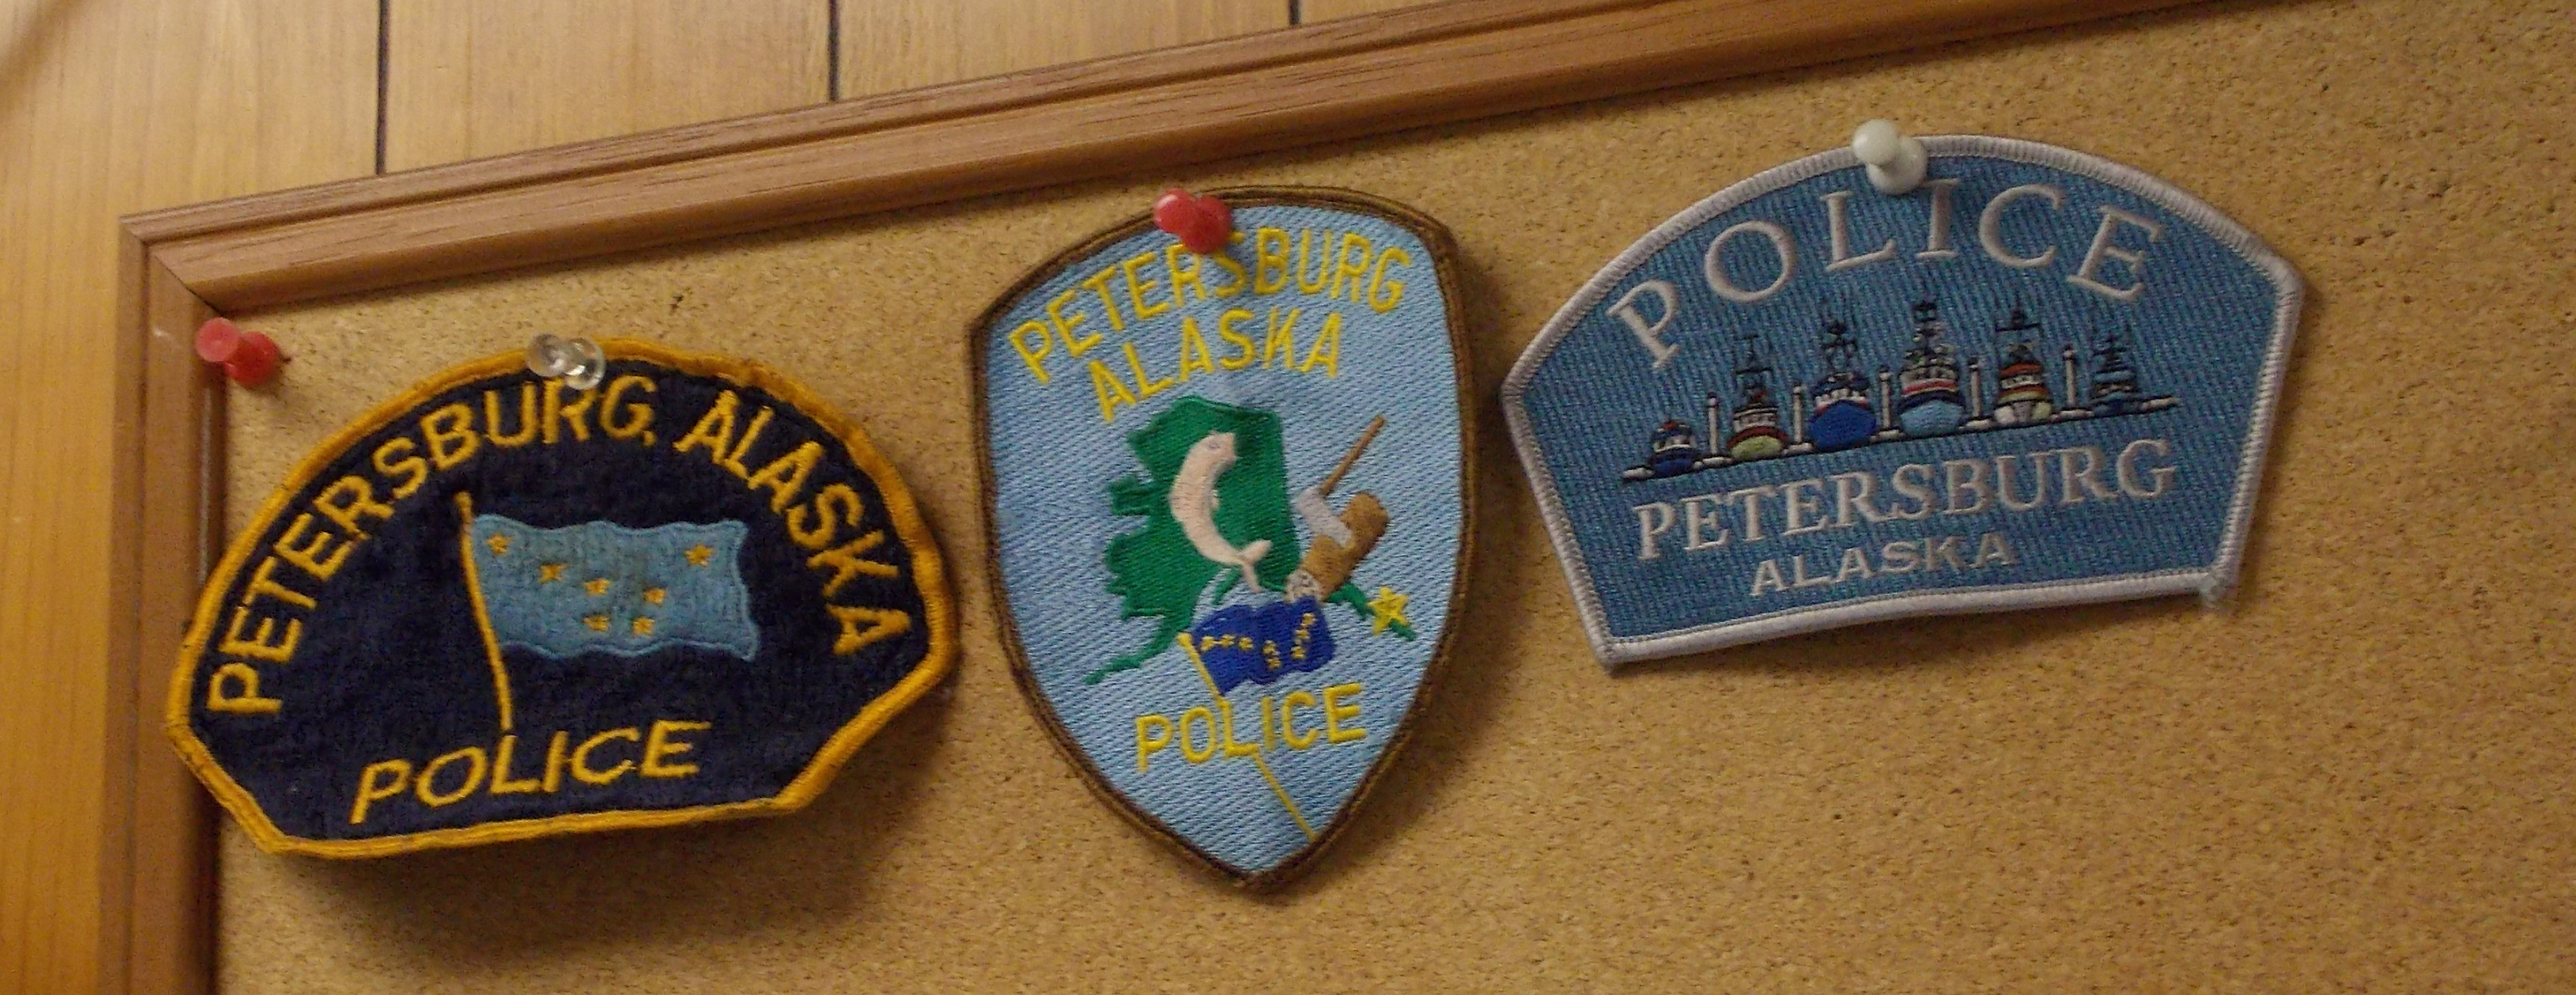 police dept patches